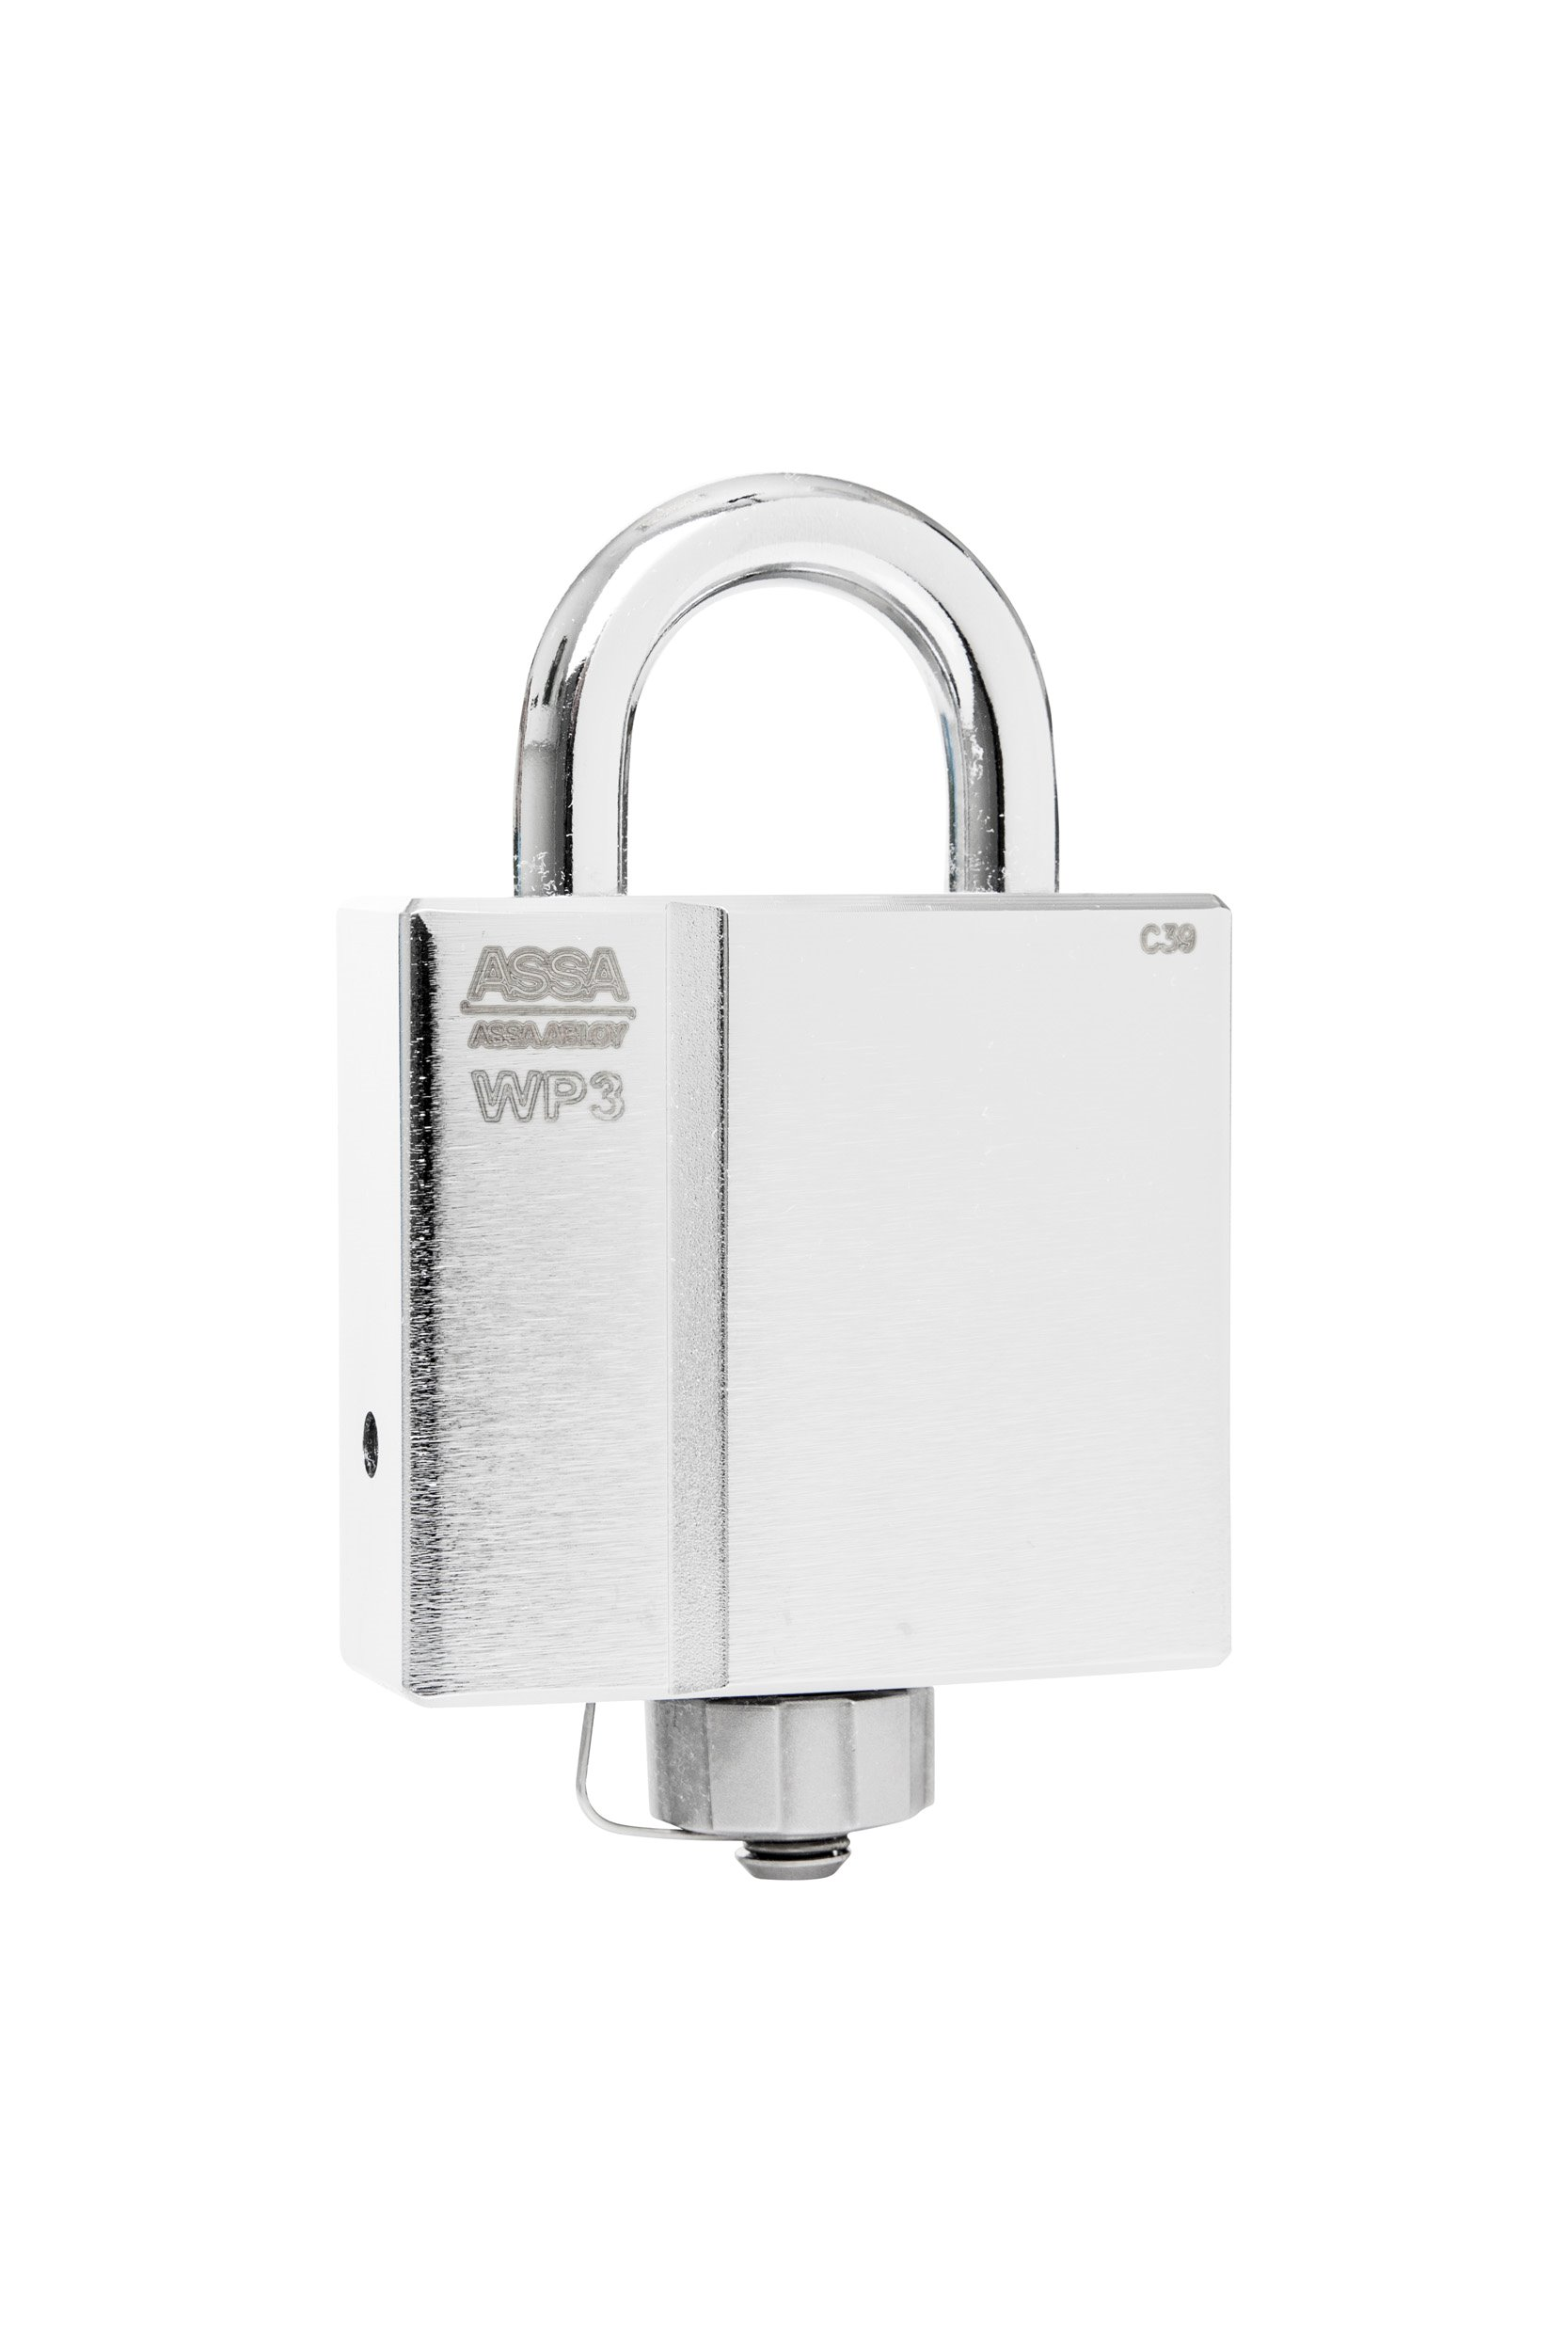 44325 - WP Key locking